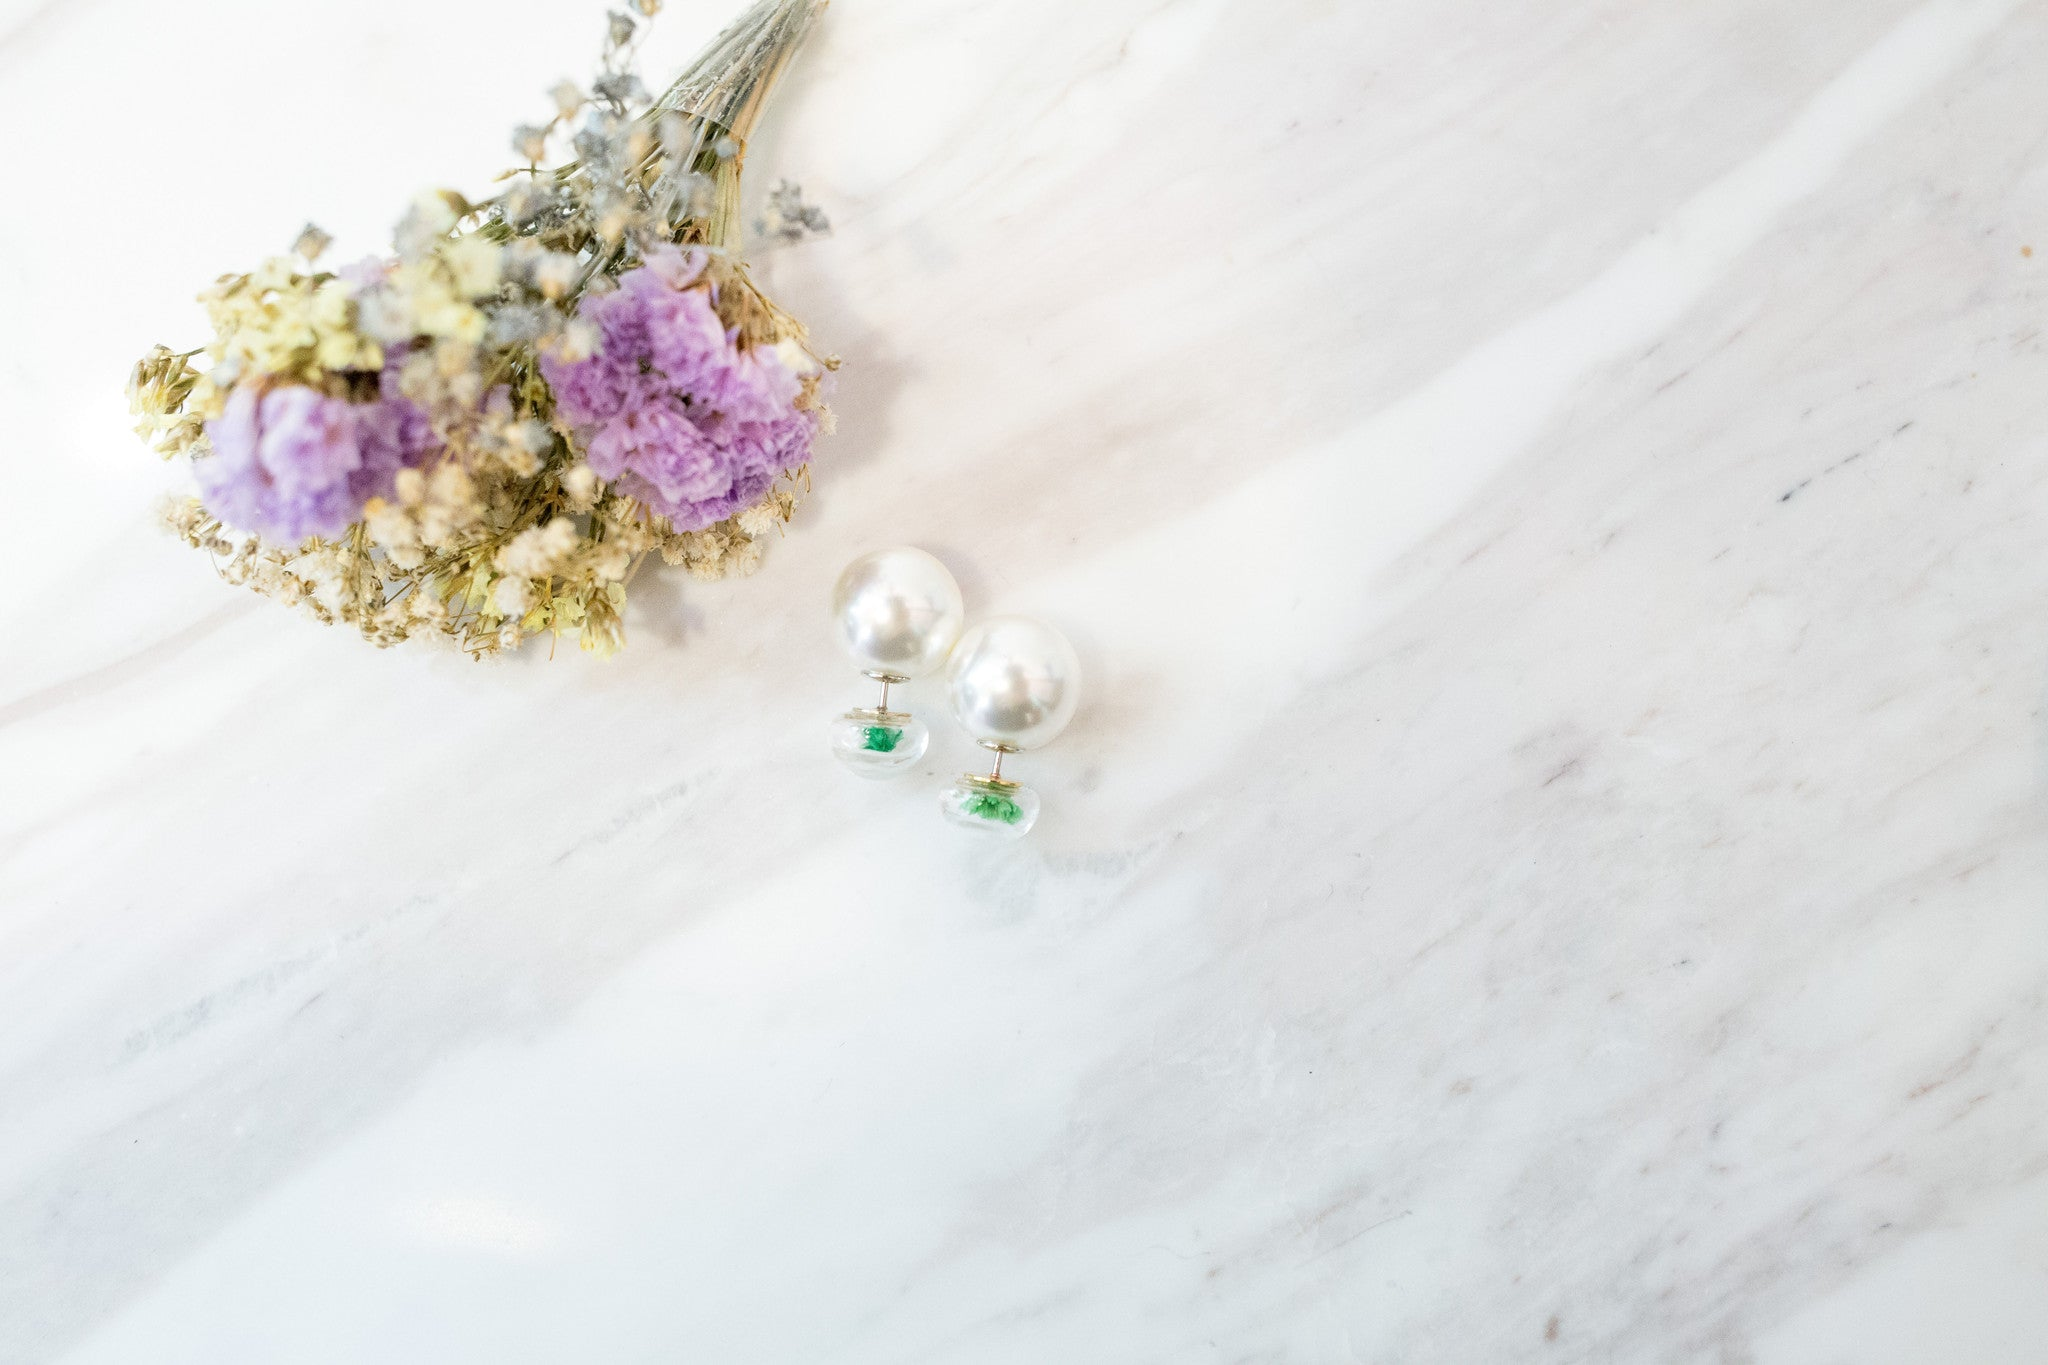 Flower bulb & Pearl Earrings/ ER8133